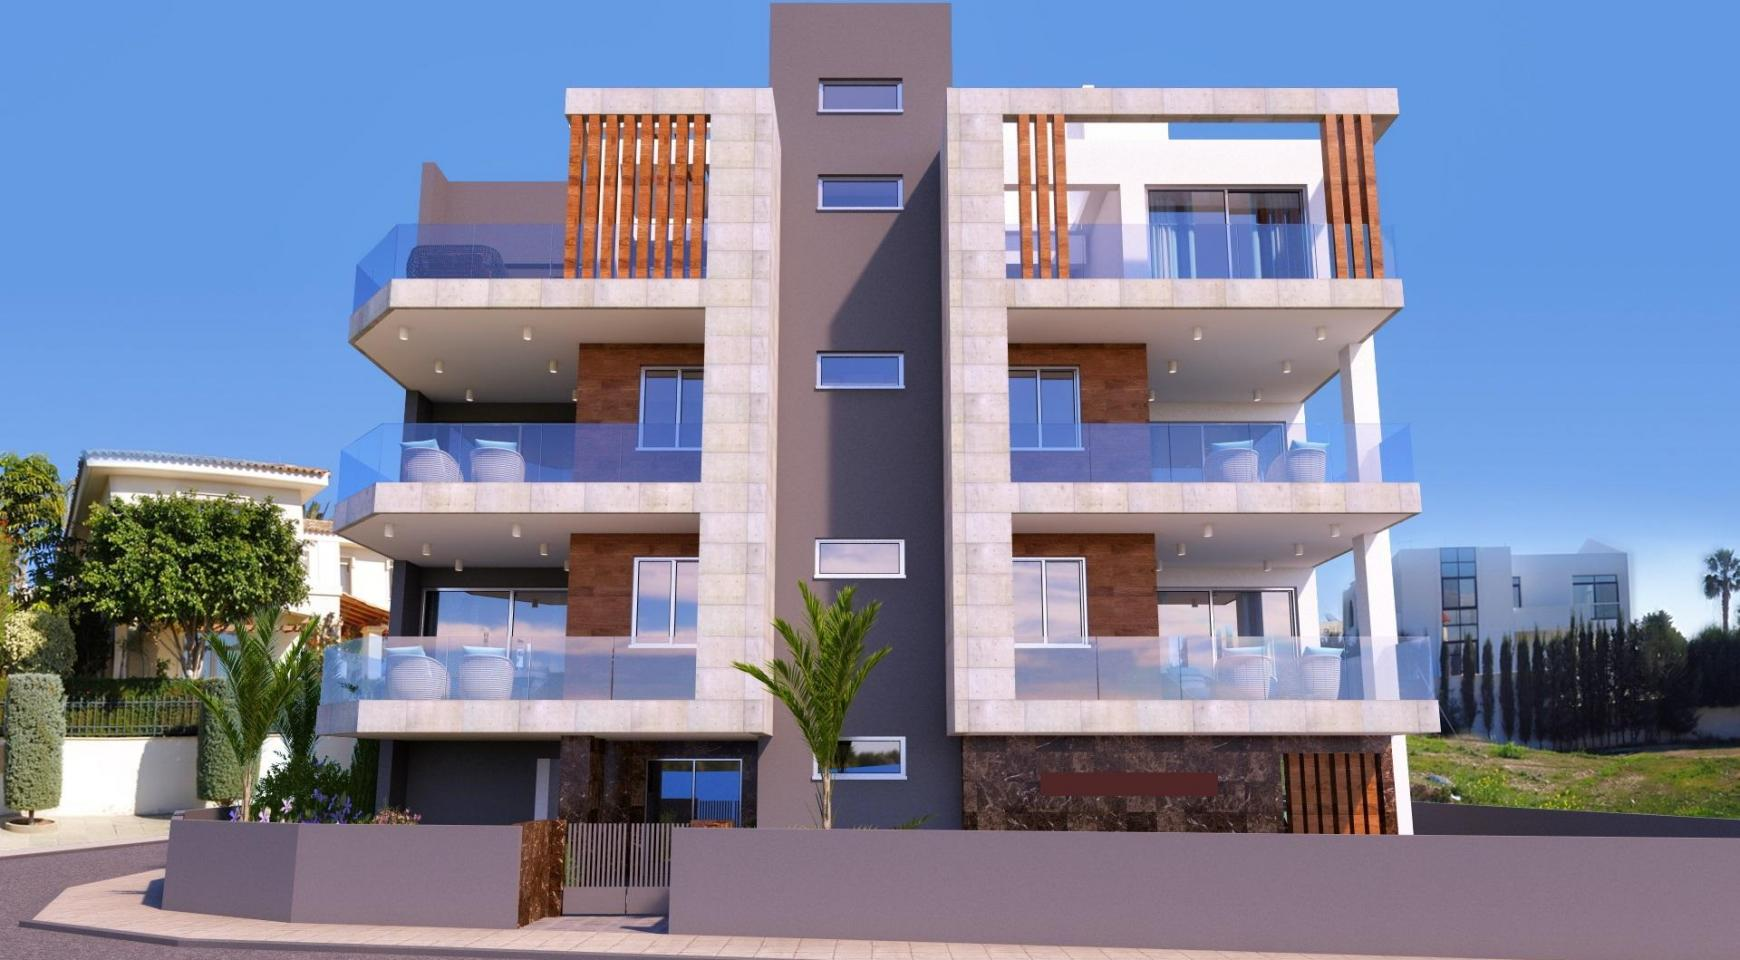 New 2 Bedroom Apartment in a Contemporary Building in Potamos Germasogeia - 3